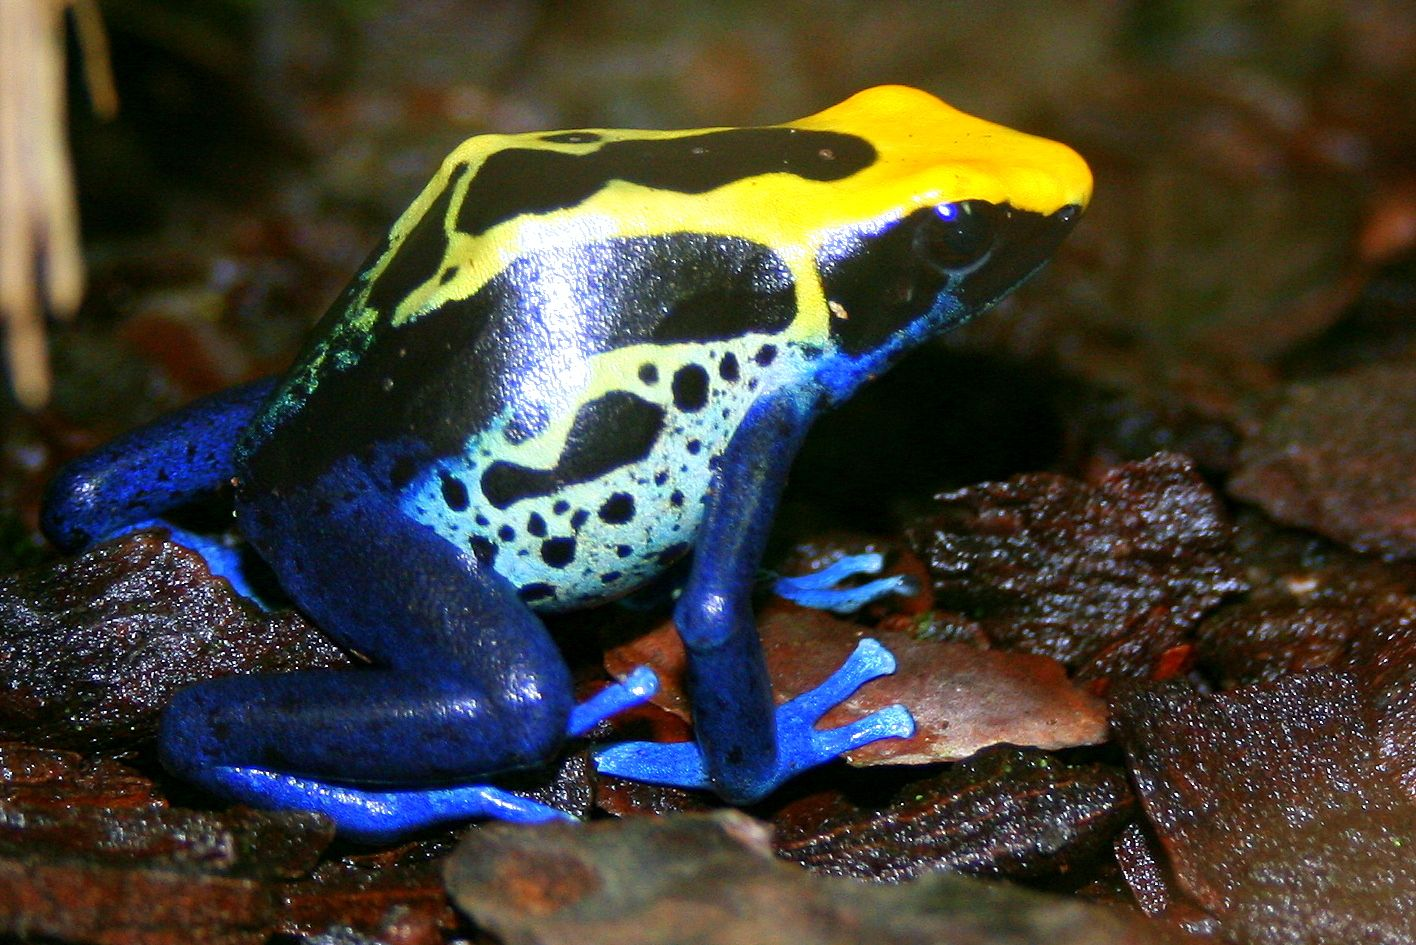 a study of the dyeing poison frog Only about an inch long, this dyeing poison dart frog, one of the big  are the  giant monkey frog from the amazon basin, a truly moving study.